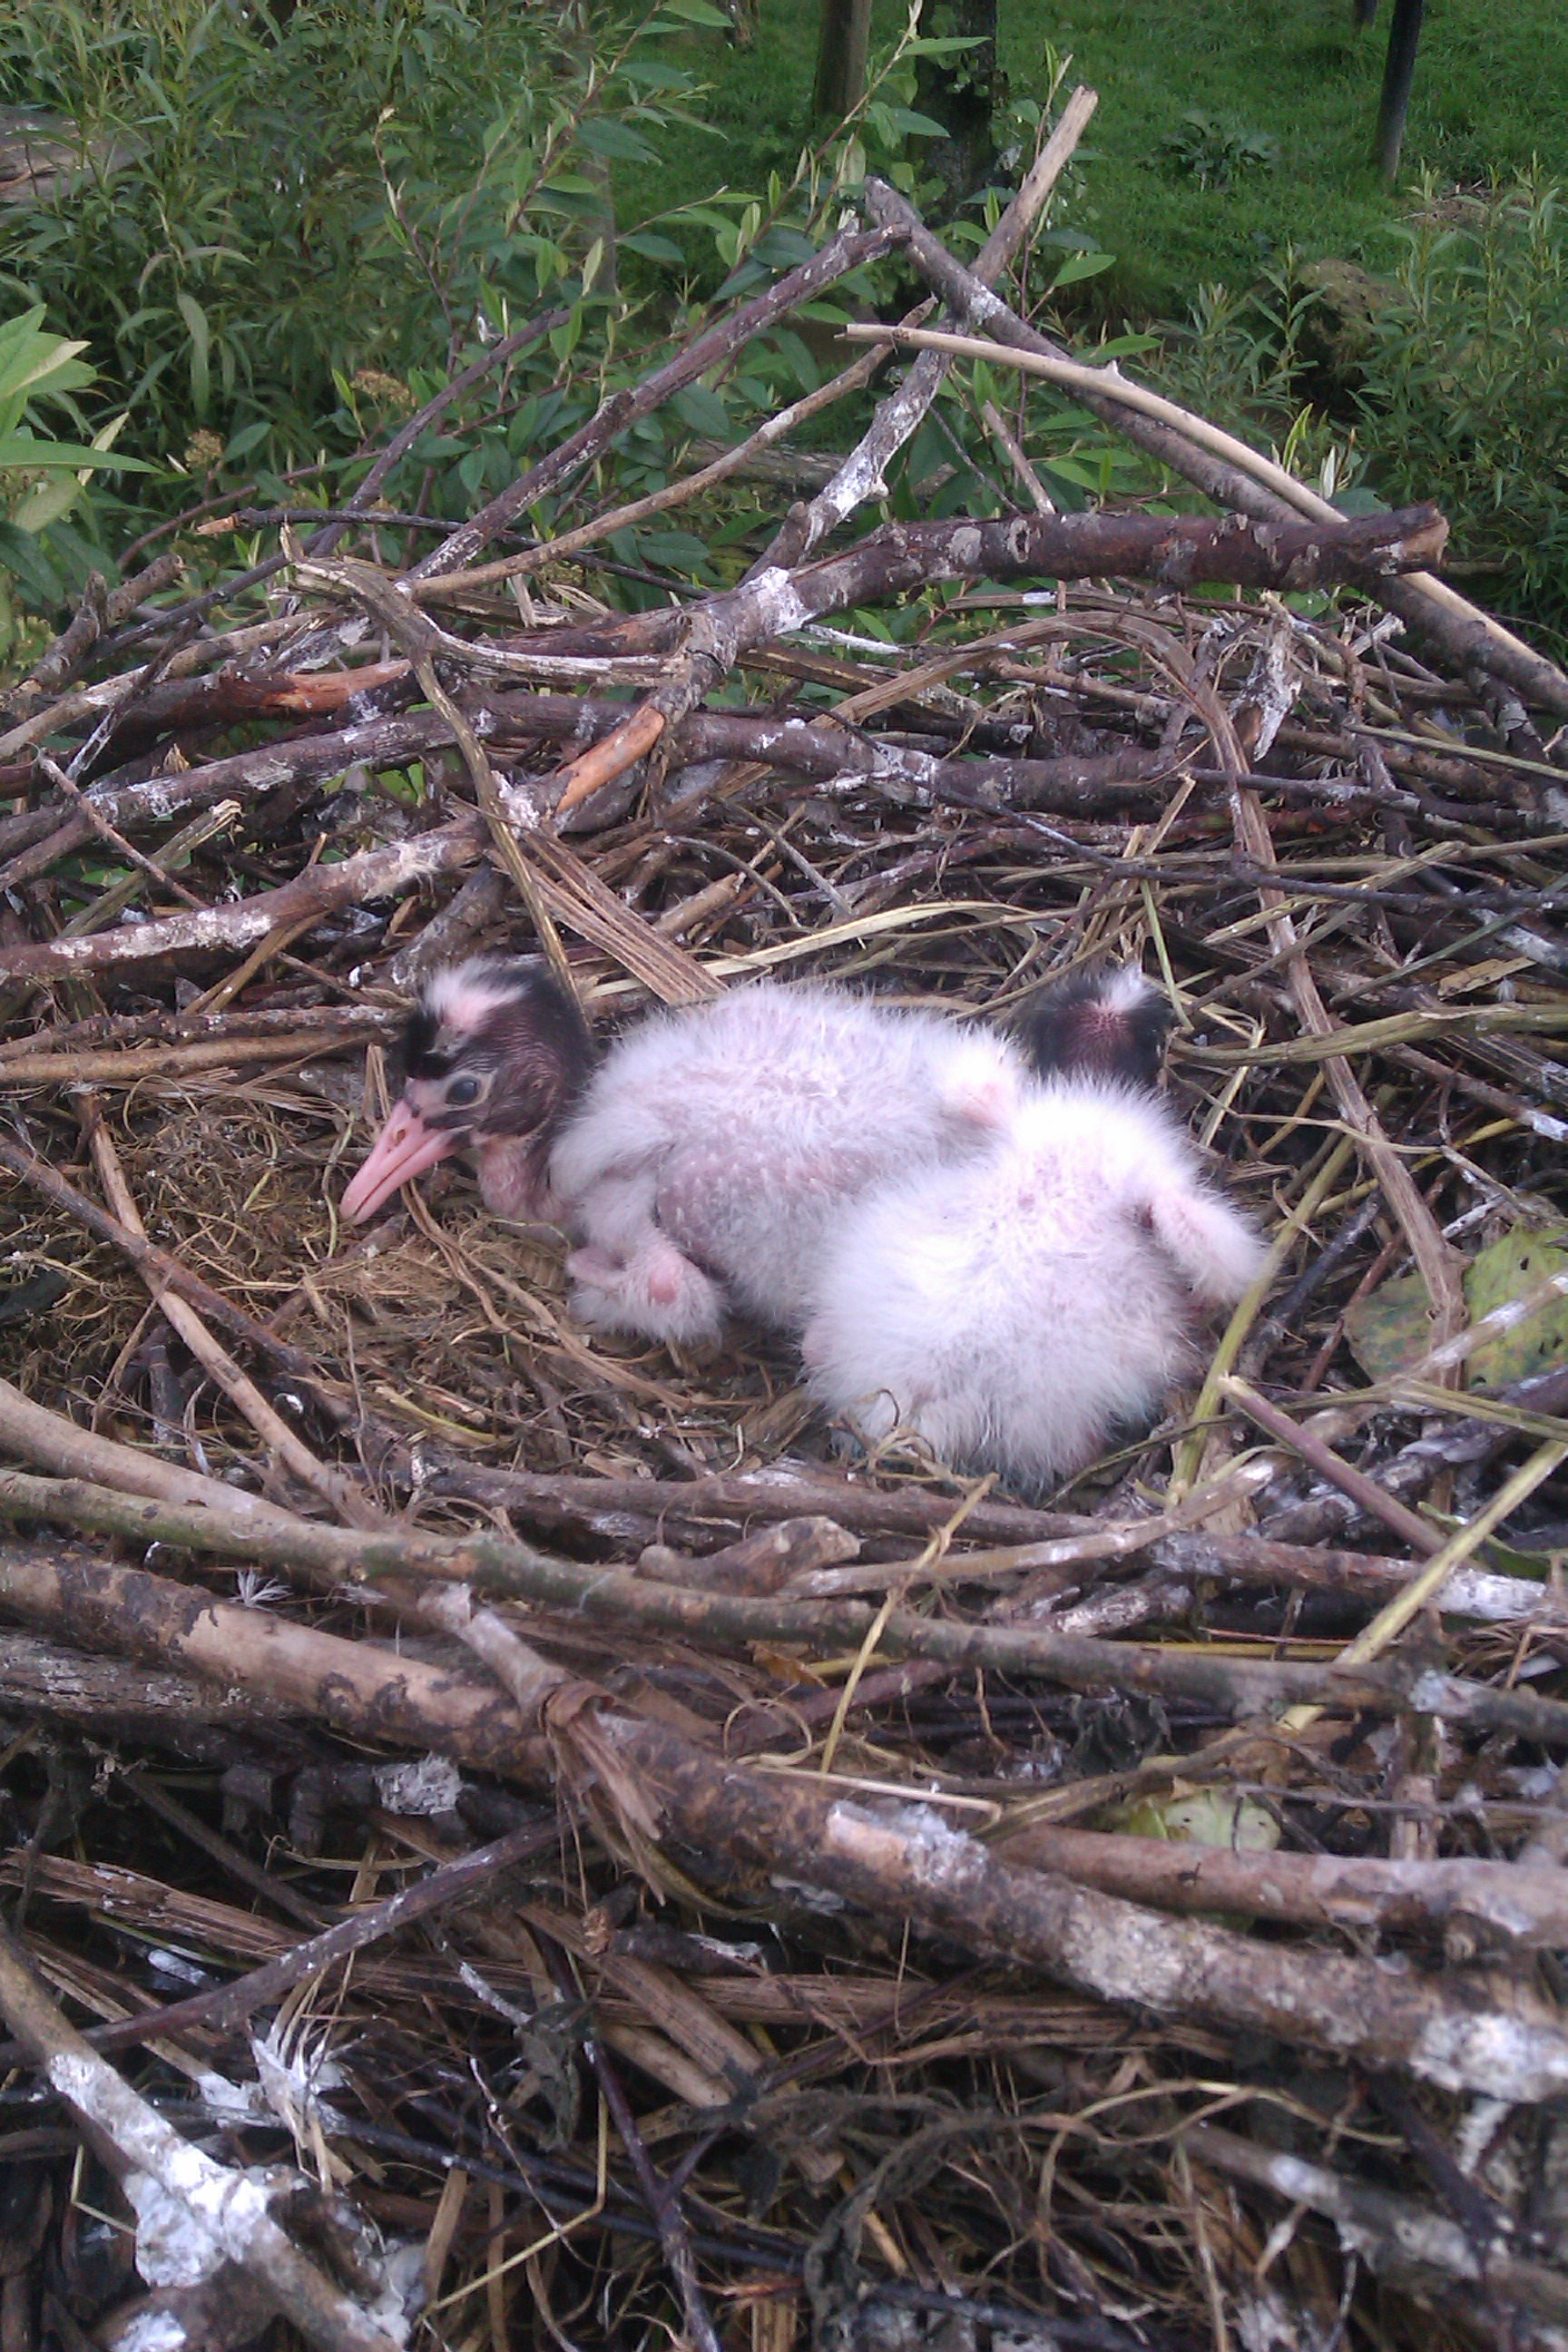 sacred ibis chicks 2 - Week 11 - It's all in the Planning